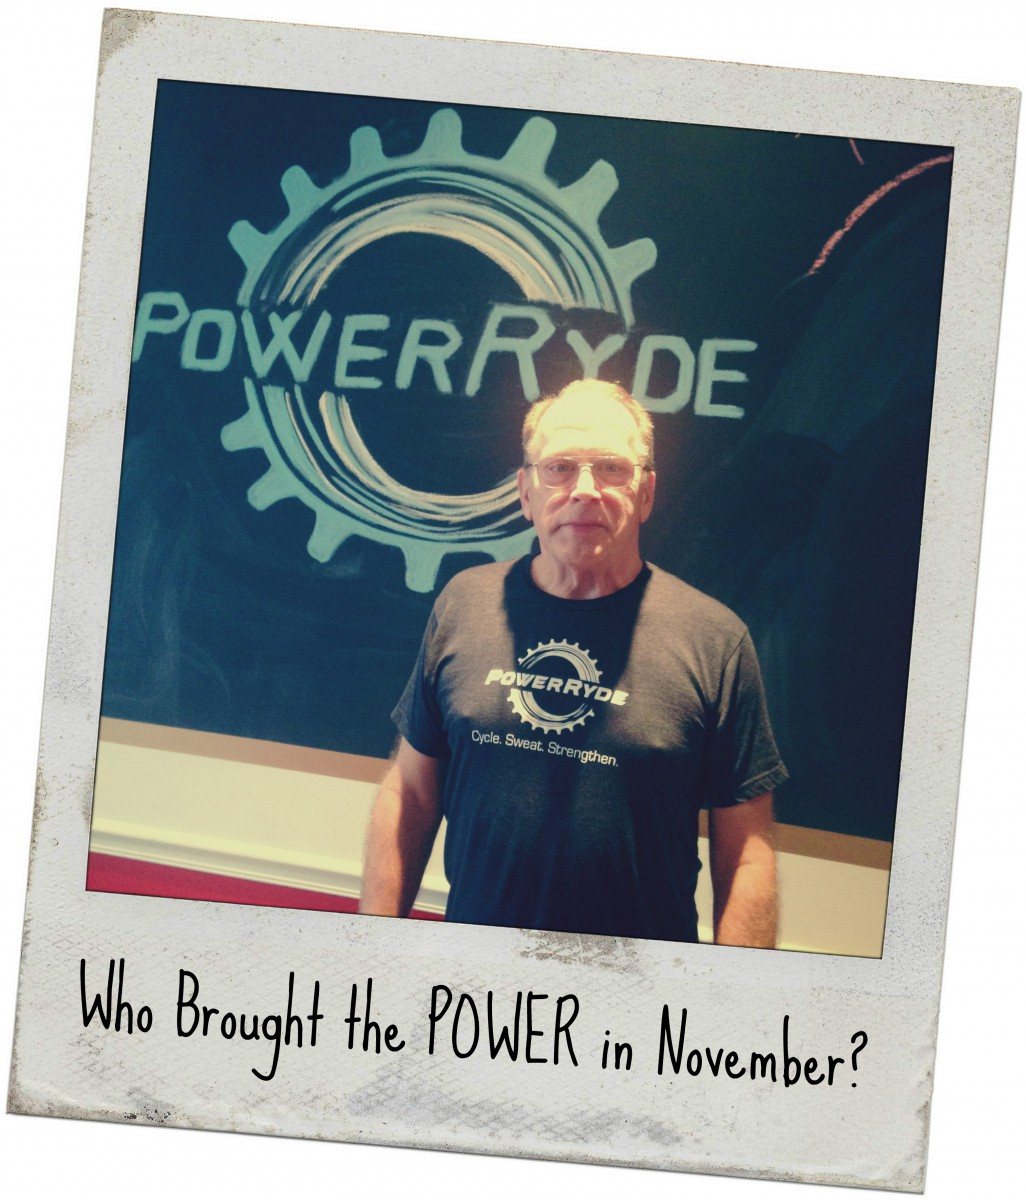 Who Brought the POWER in November?